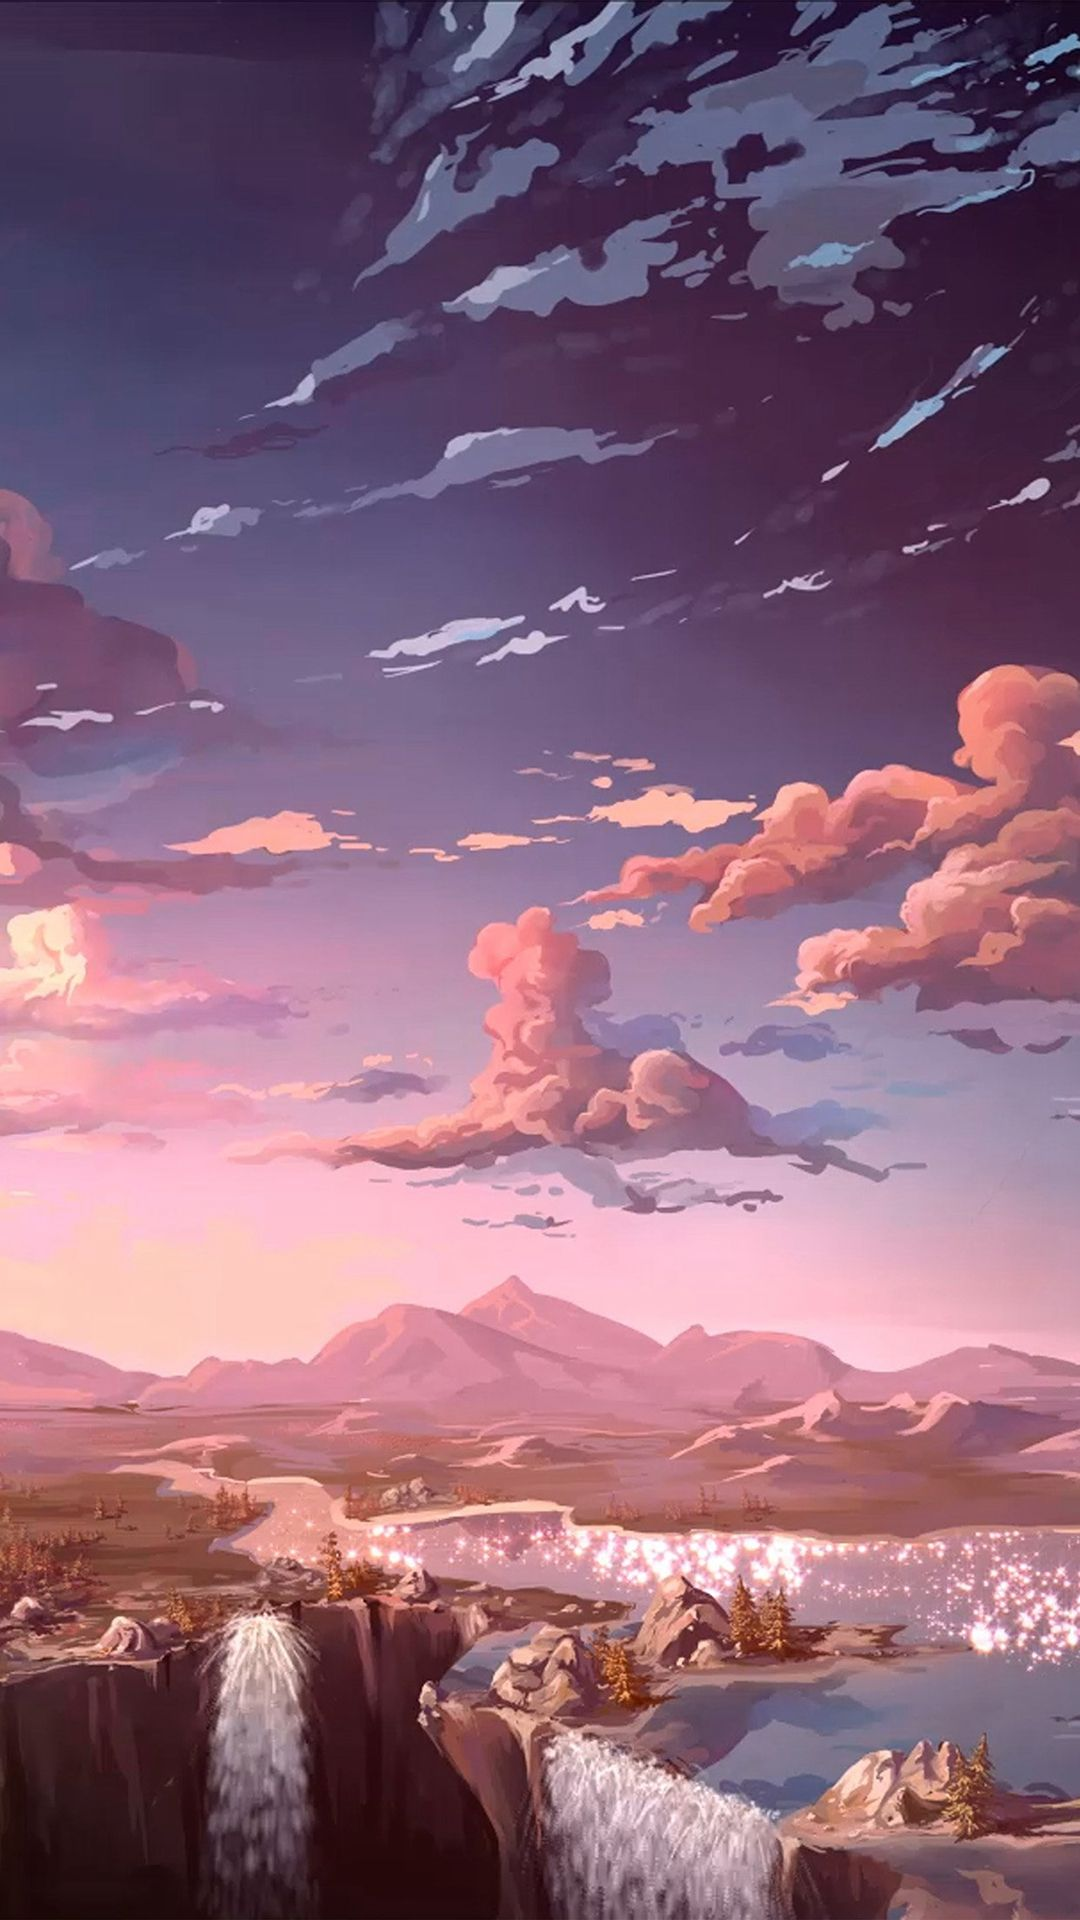 Digital Panting Concept Art Landscape Other Planet Future Surreal Mystic Fantasy Anime Scenery Wallpaper Landscape Wallpaper Scenery Wallpaper